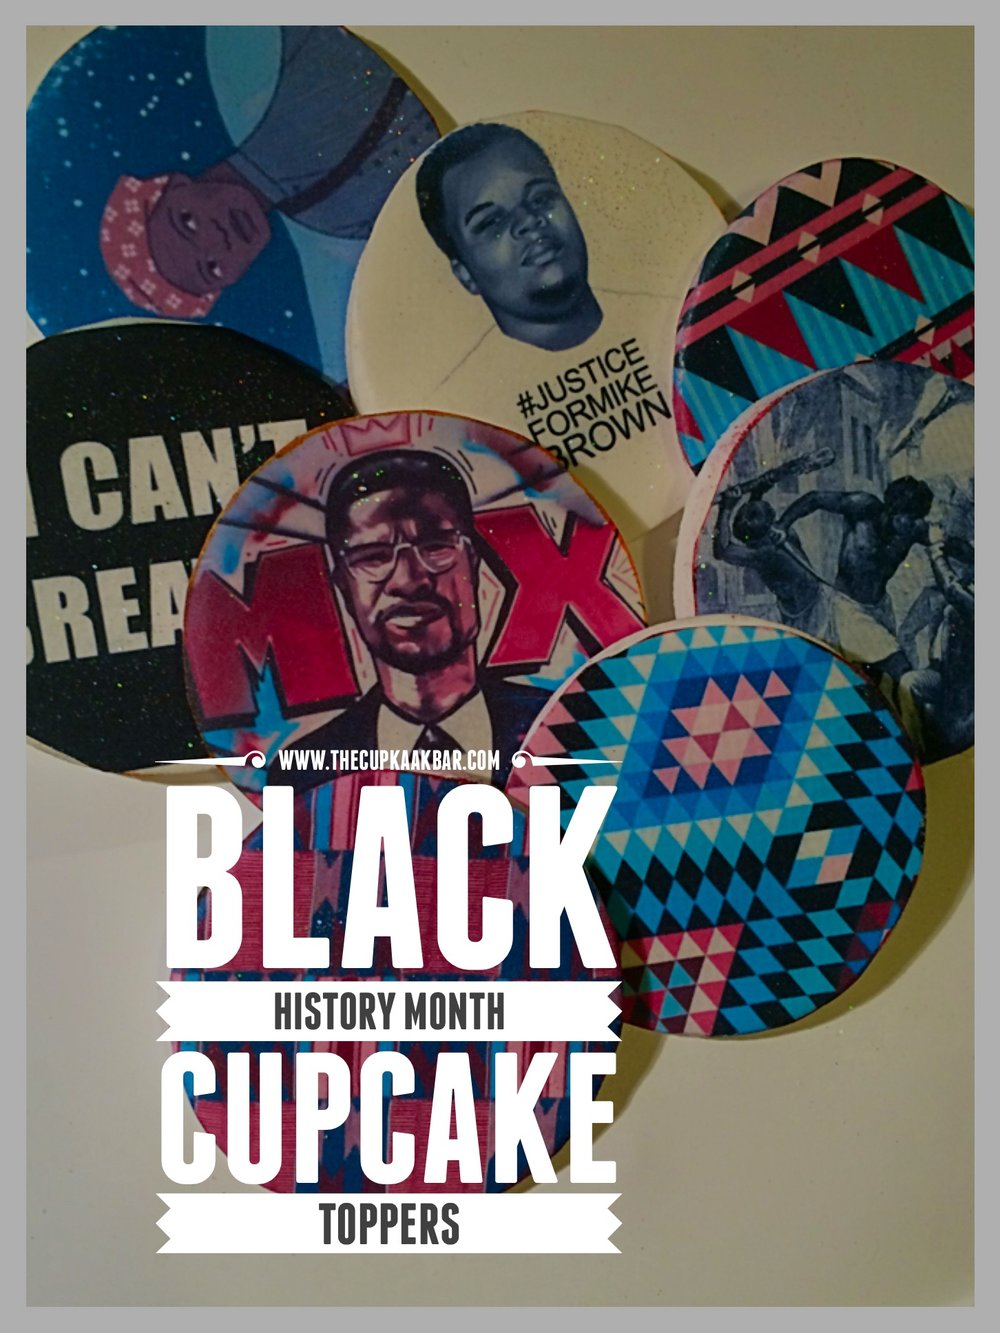 Need just toppers? We make those also theses 100% edible printed fondant black history toppers $40 for 2 dozen. Would you like them on cupcakes? $40 per dozen